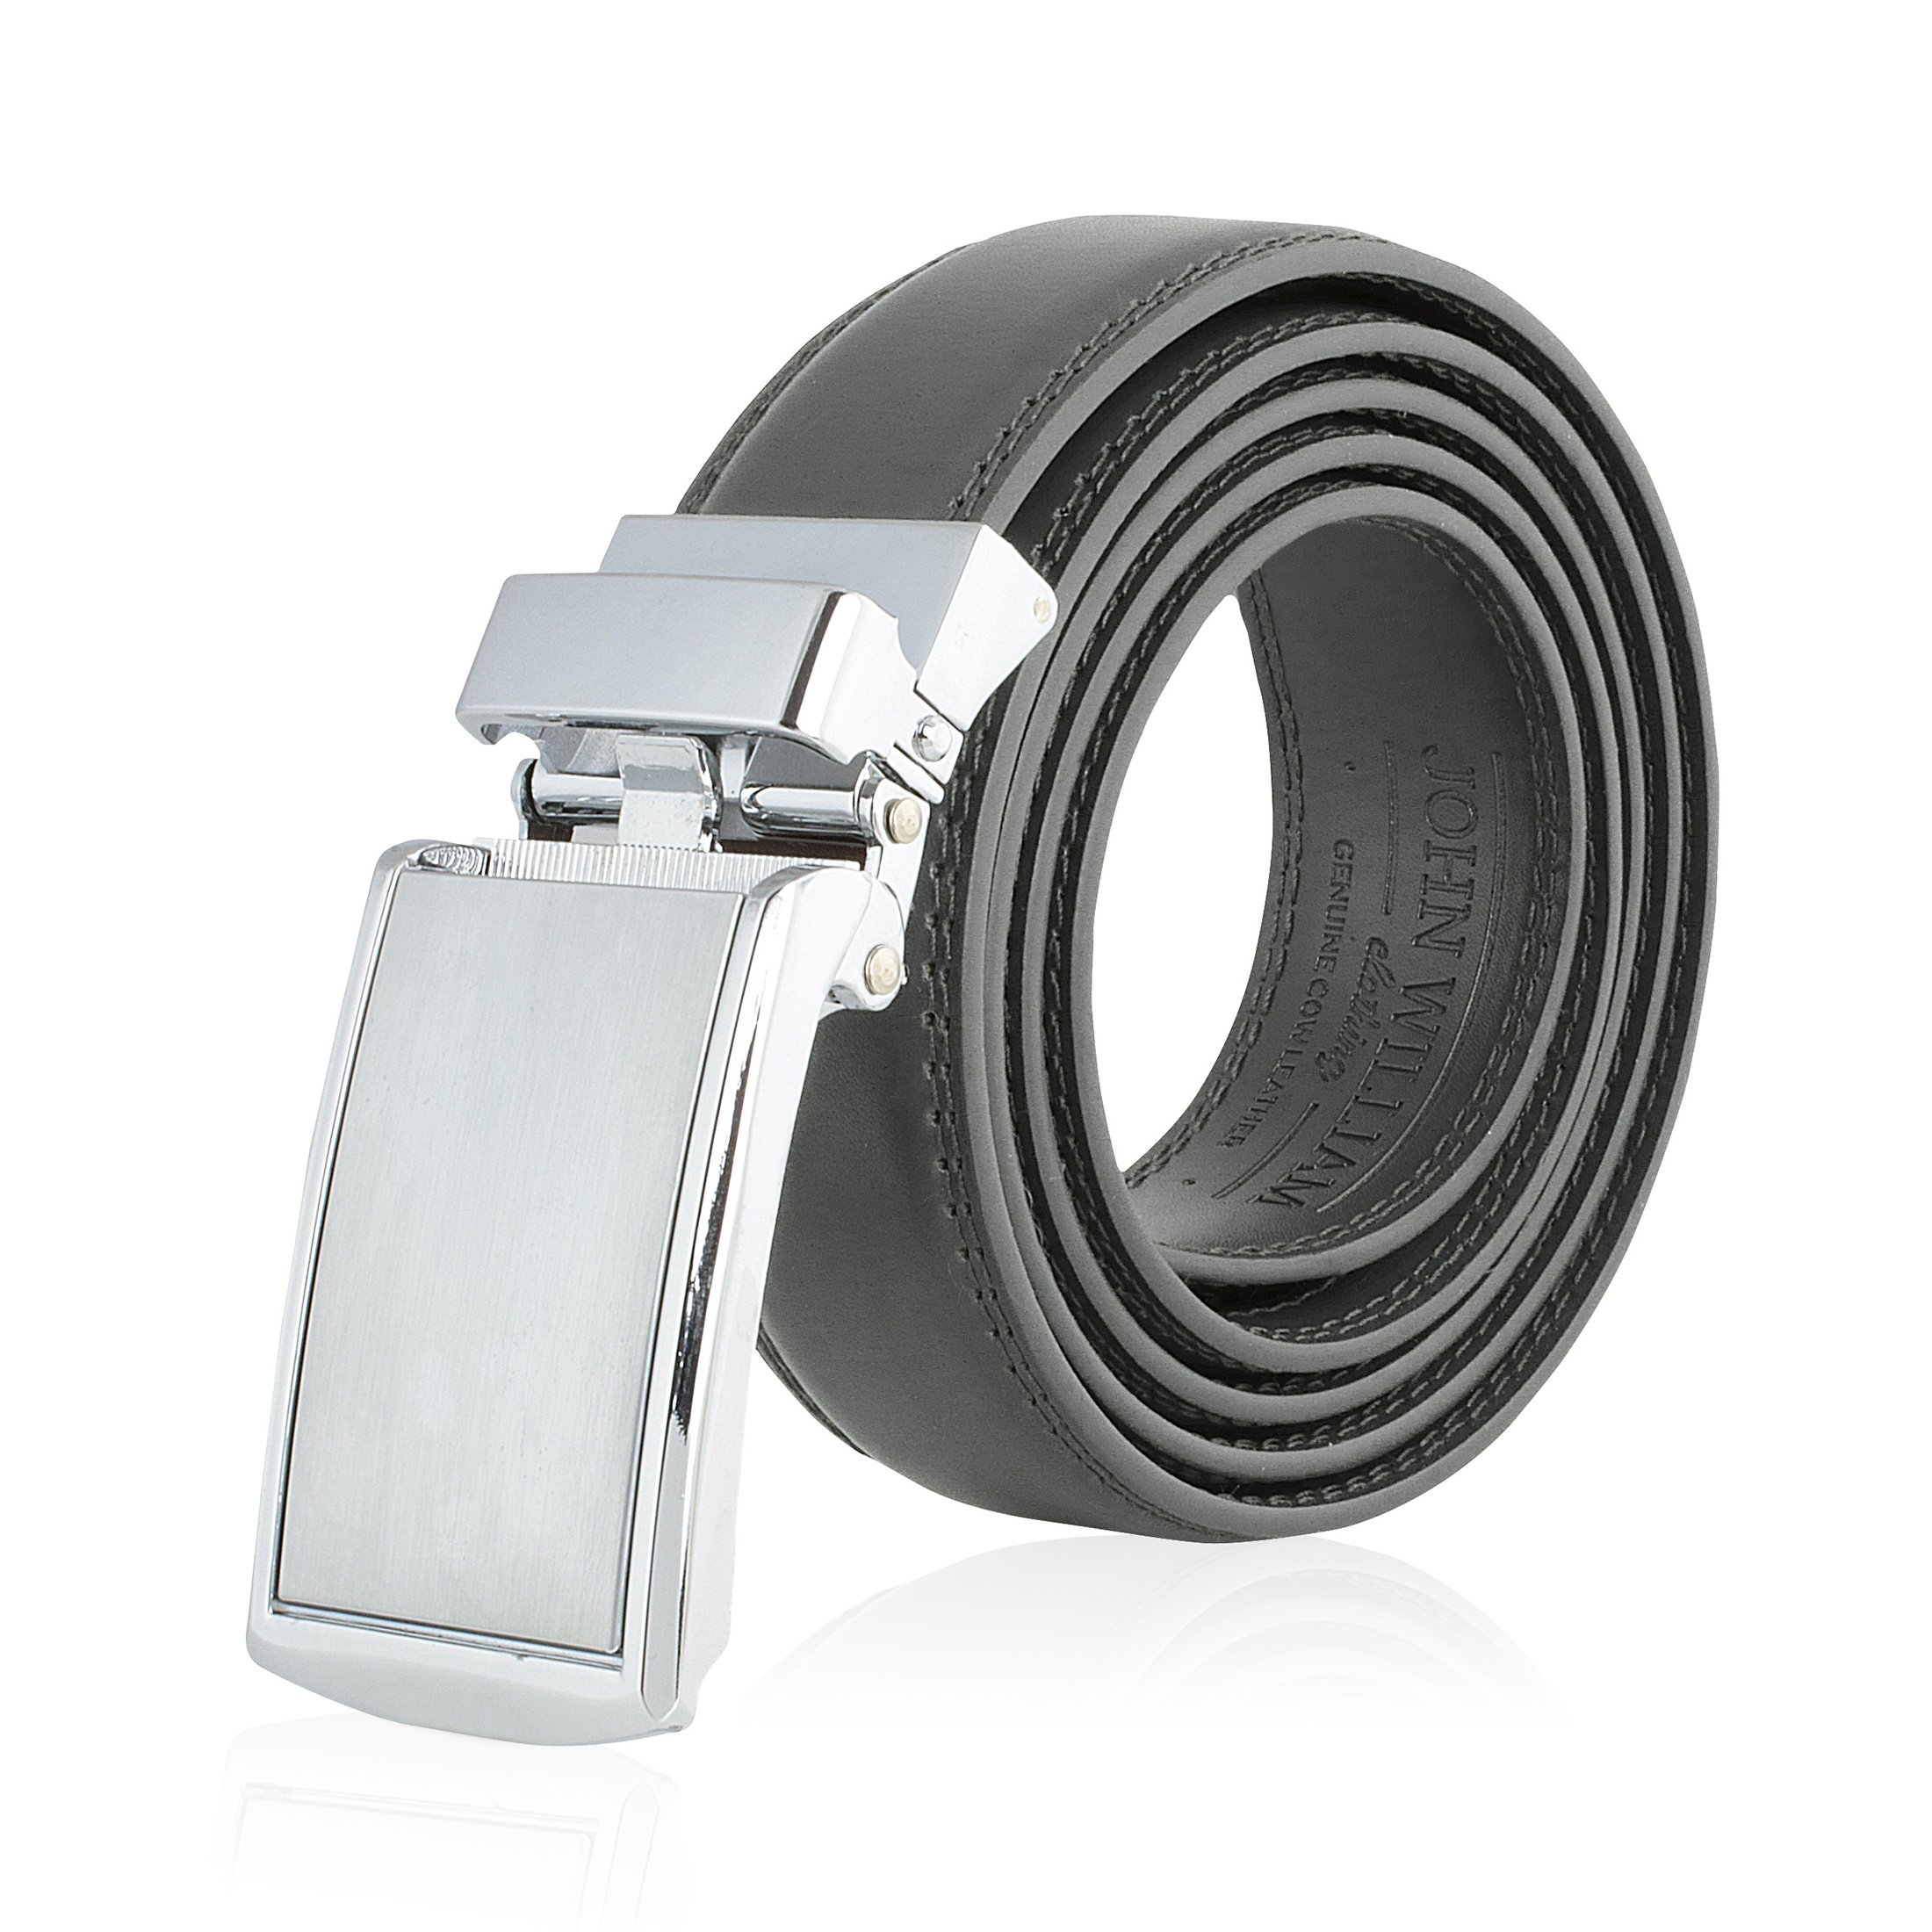 Men's Genuine Leather Ratchet Belt: Stainless Steel Buckle Dress Golf Belts for Men Business, Formal & Casual Wear - Grey/Gray